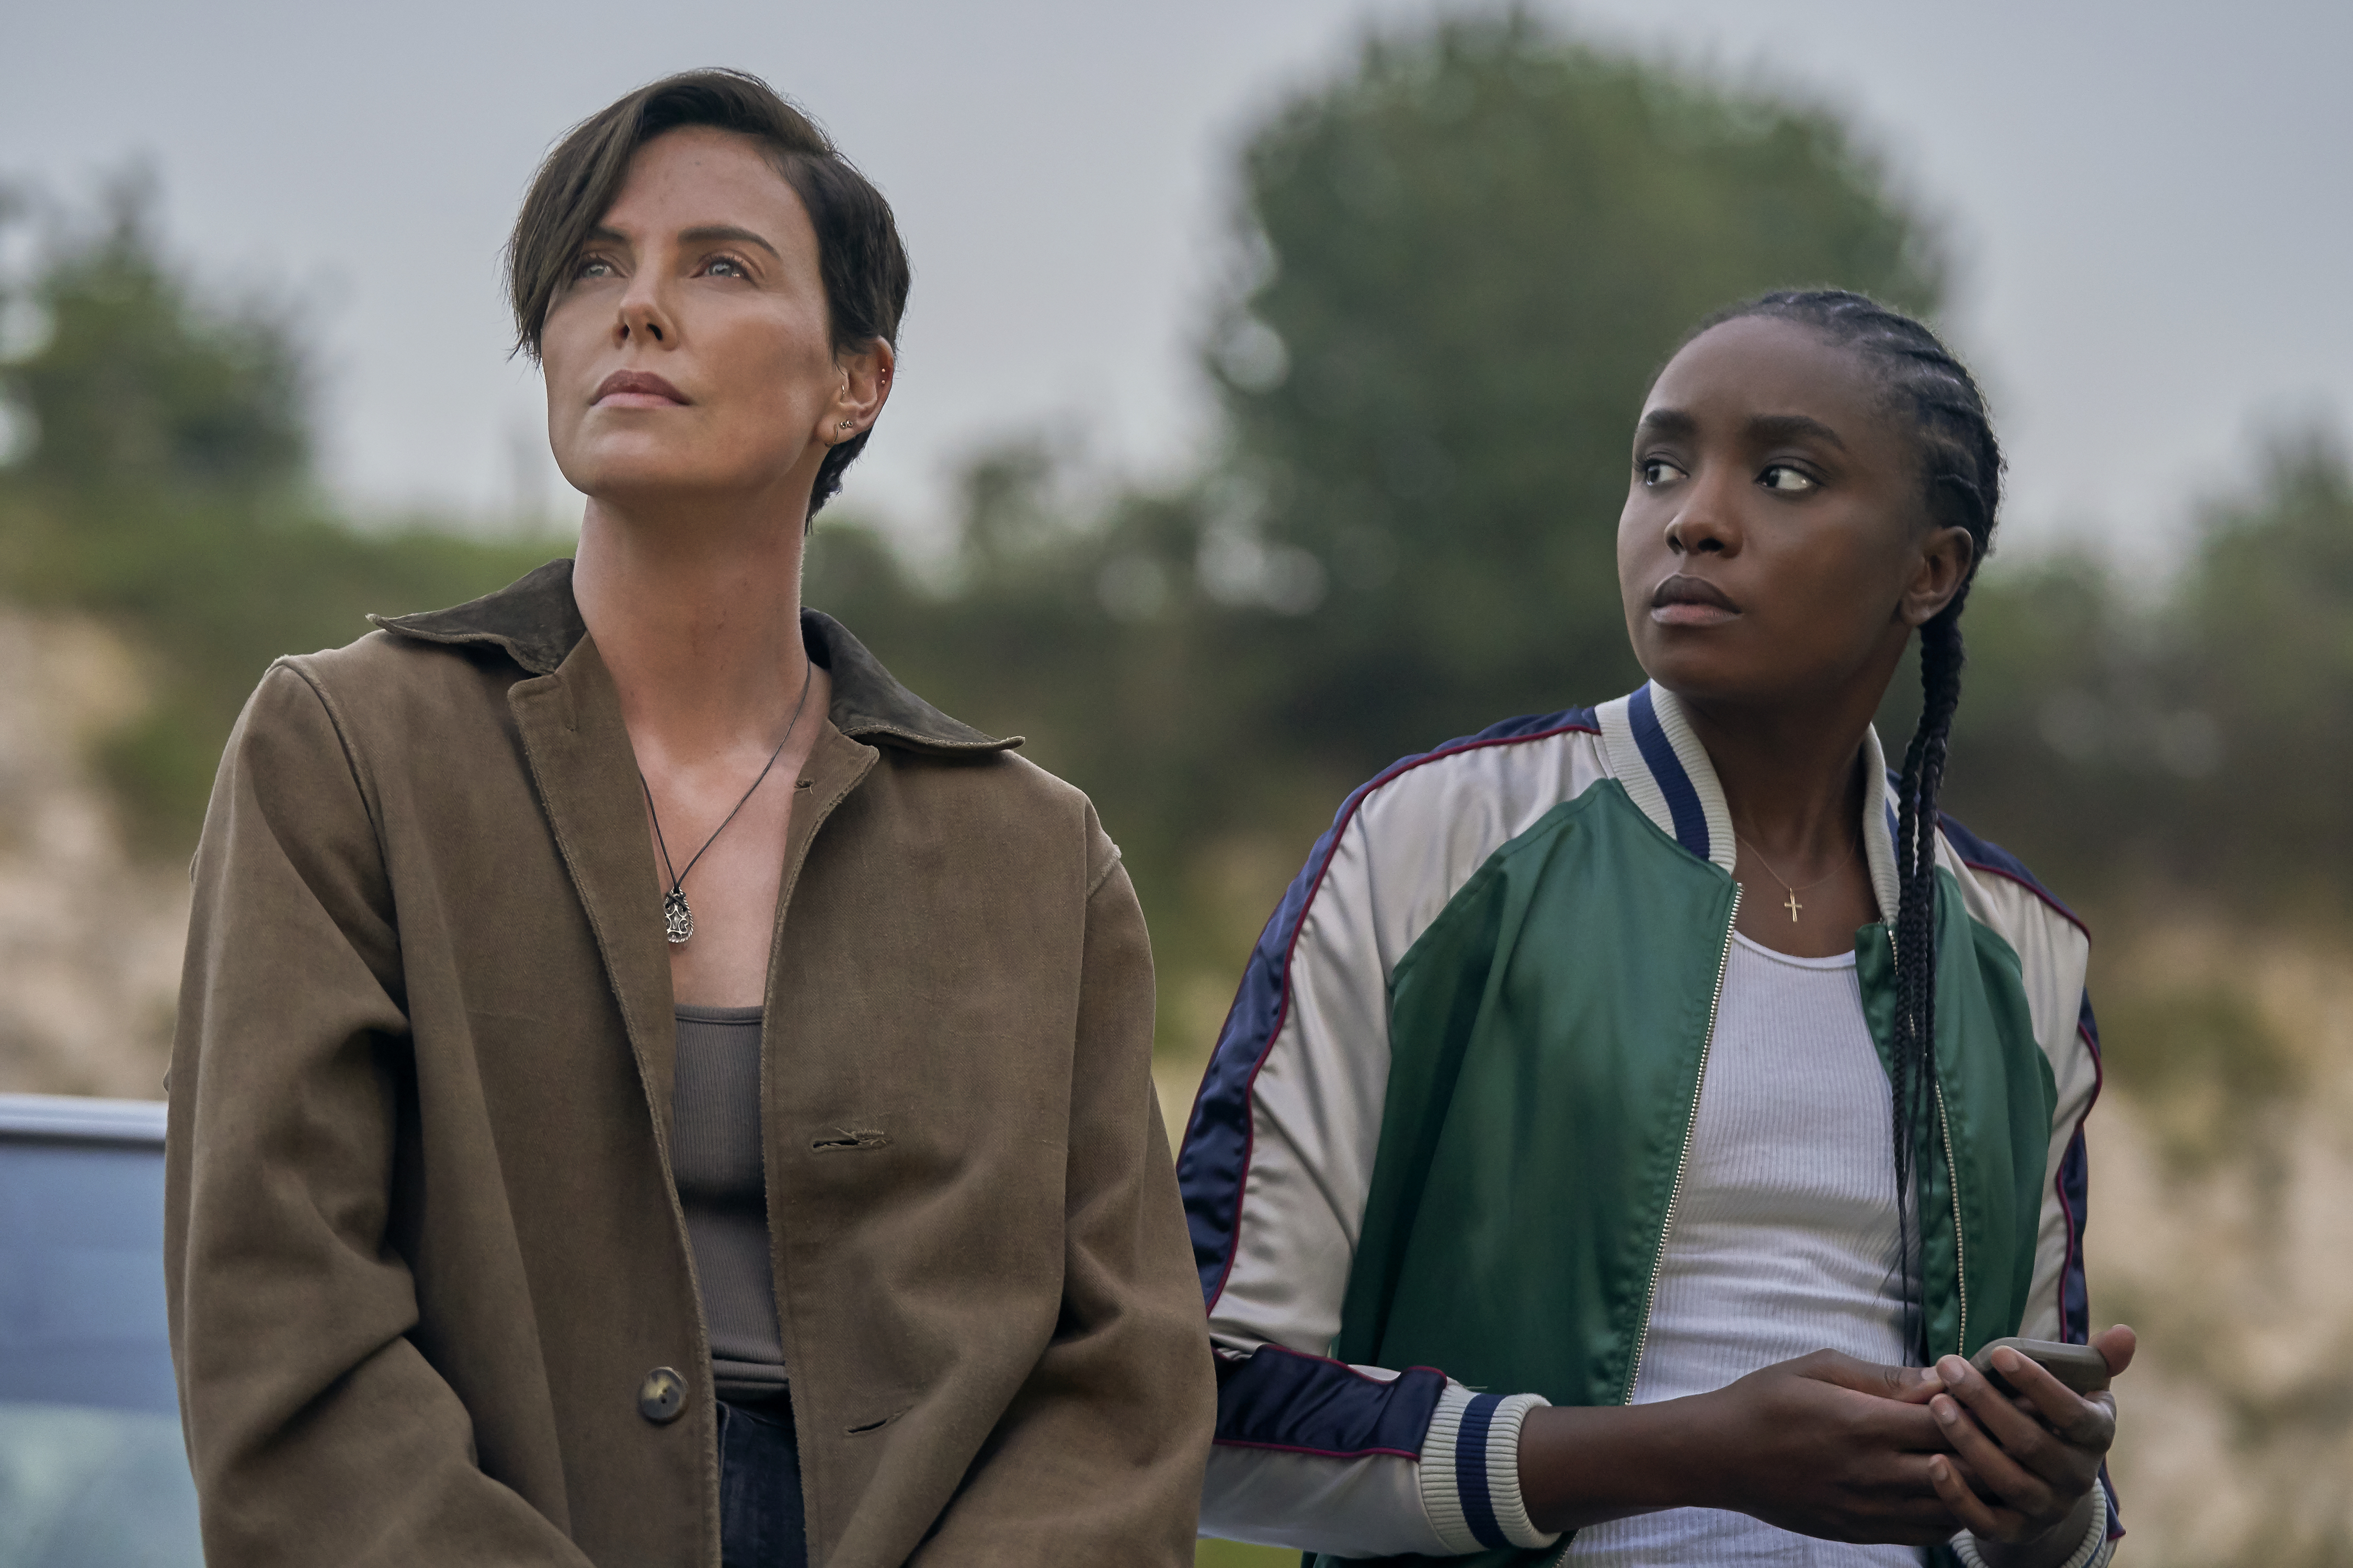 Charlize Theron and Kiki Layne in Netflix's 'The Old Guard'